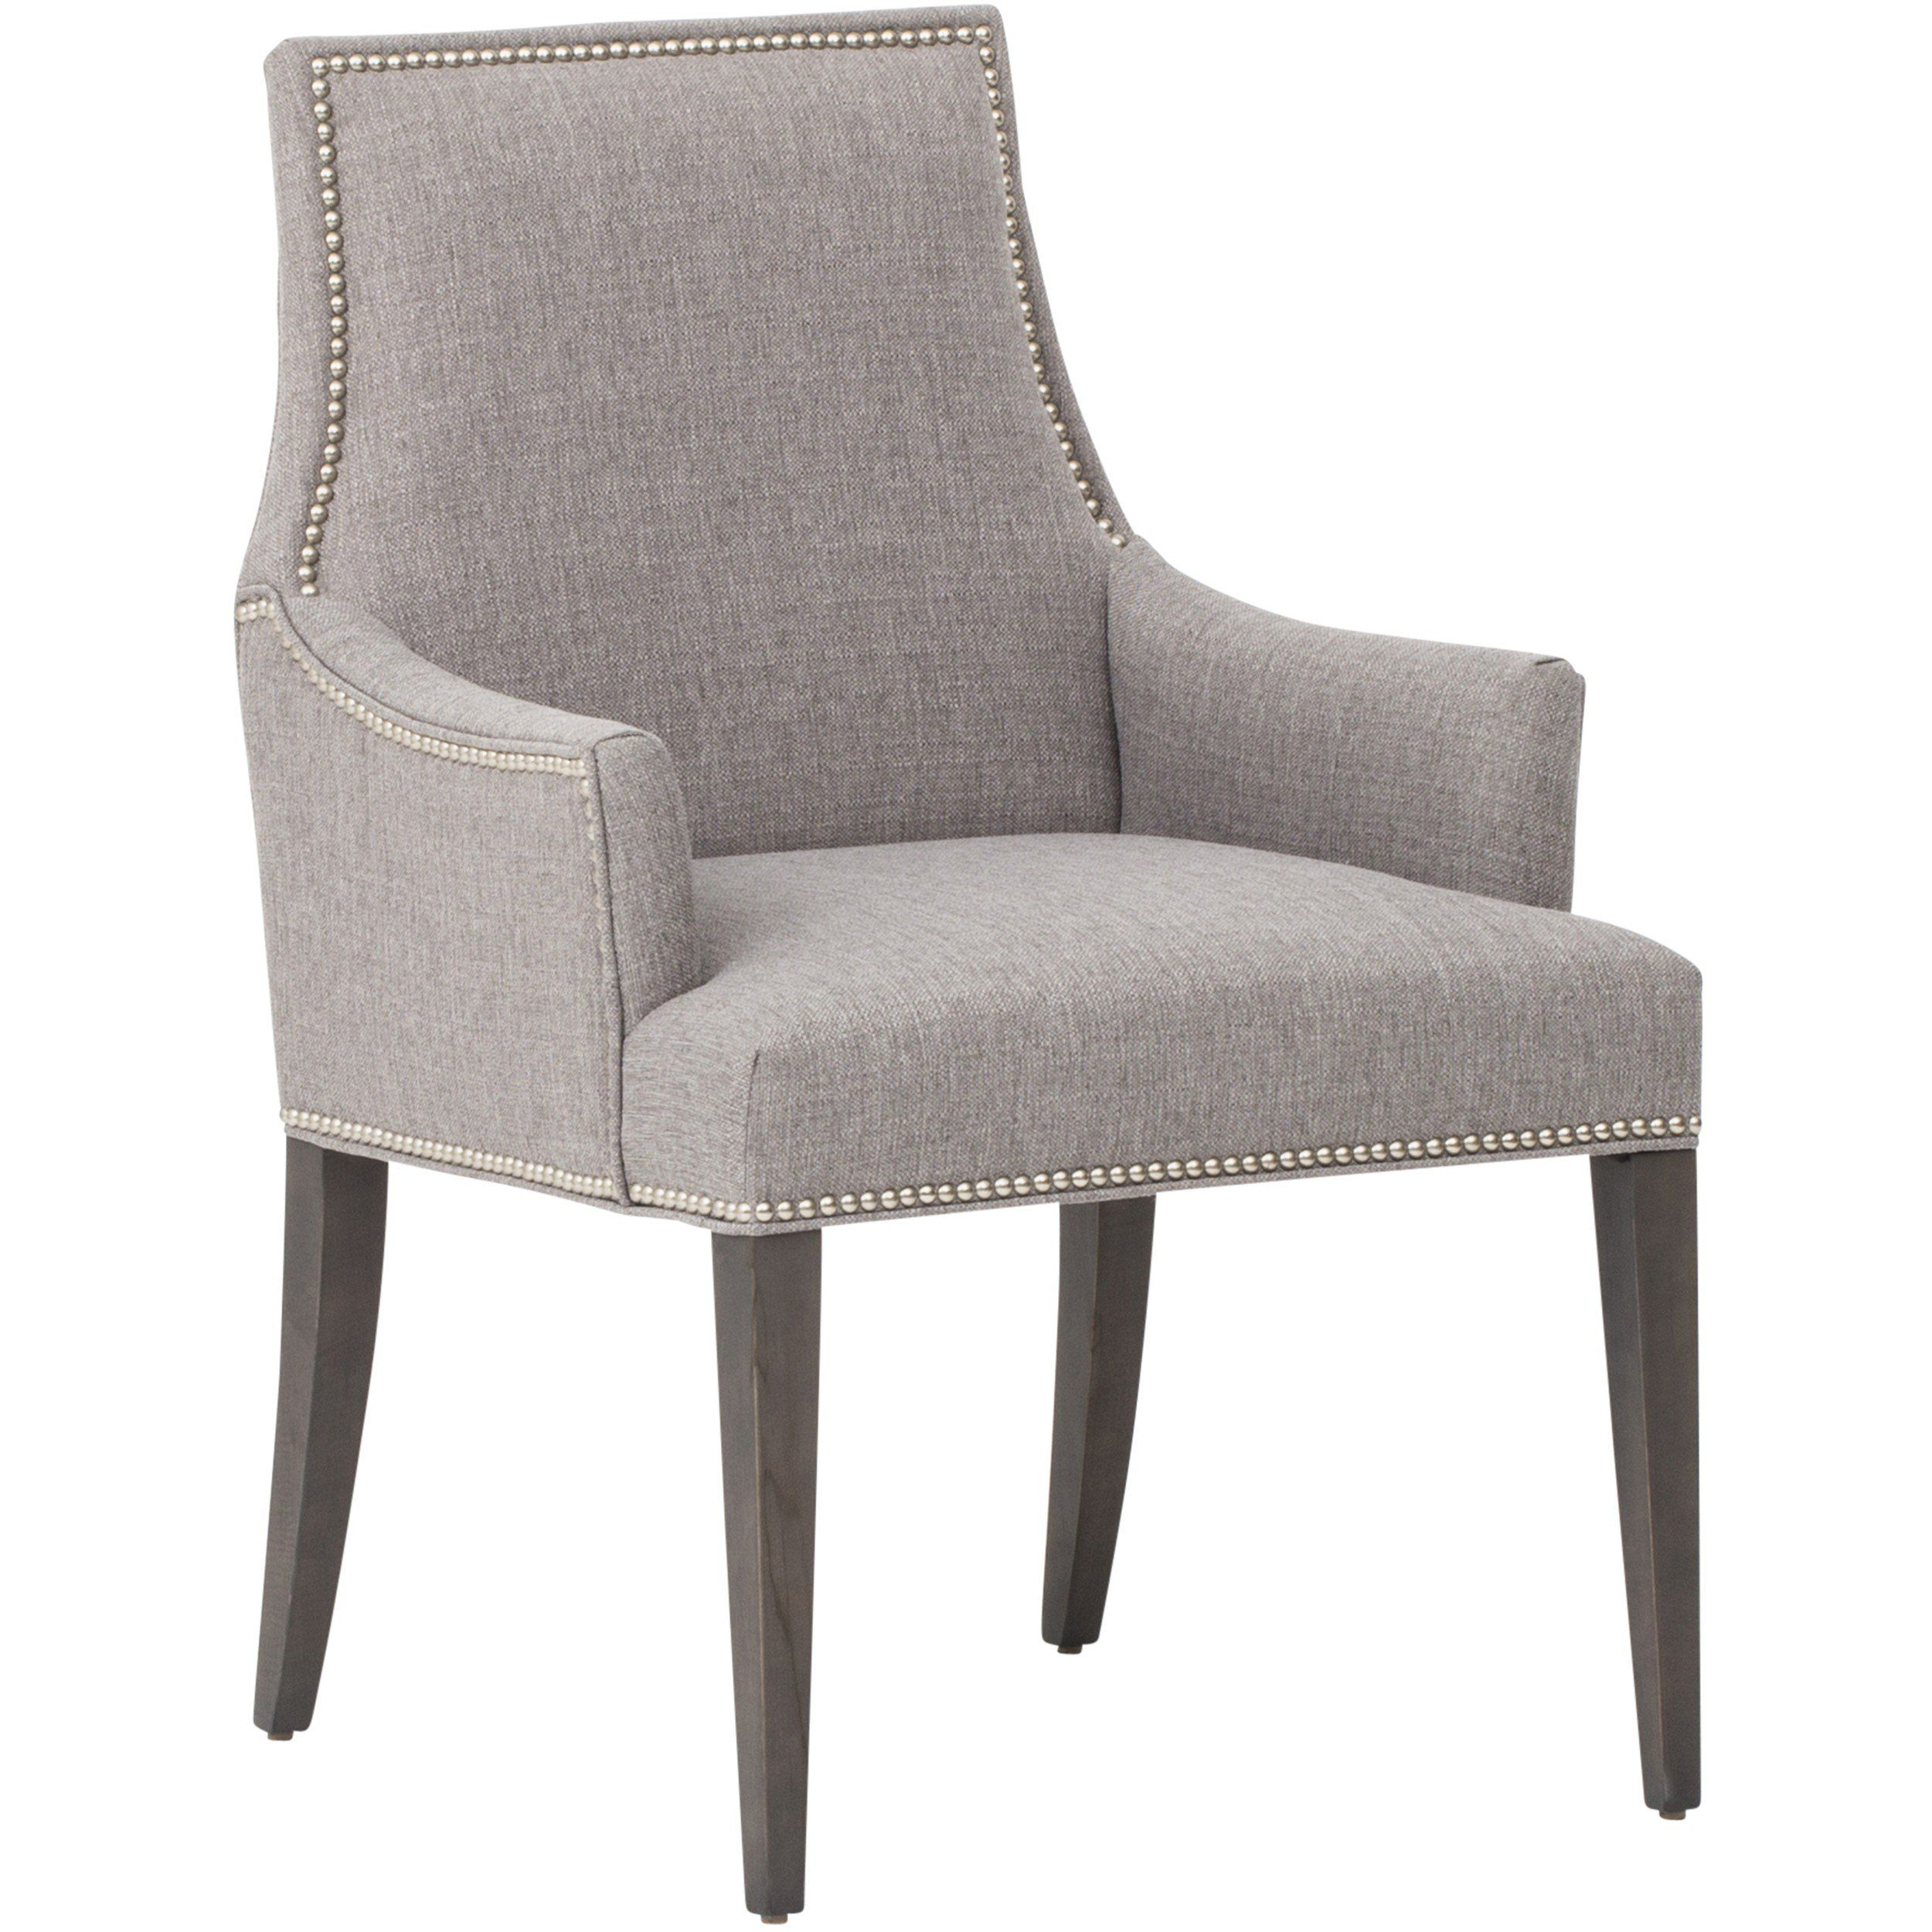 oliver arm chair, durango slate - chairs & benches - dining